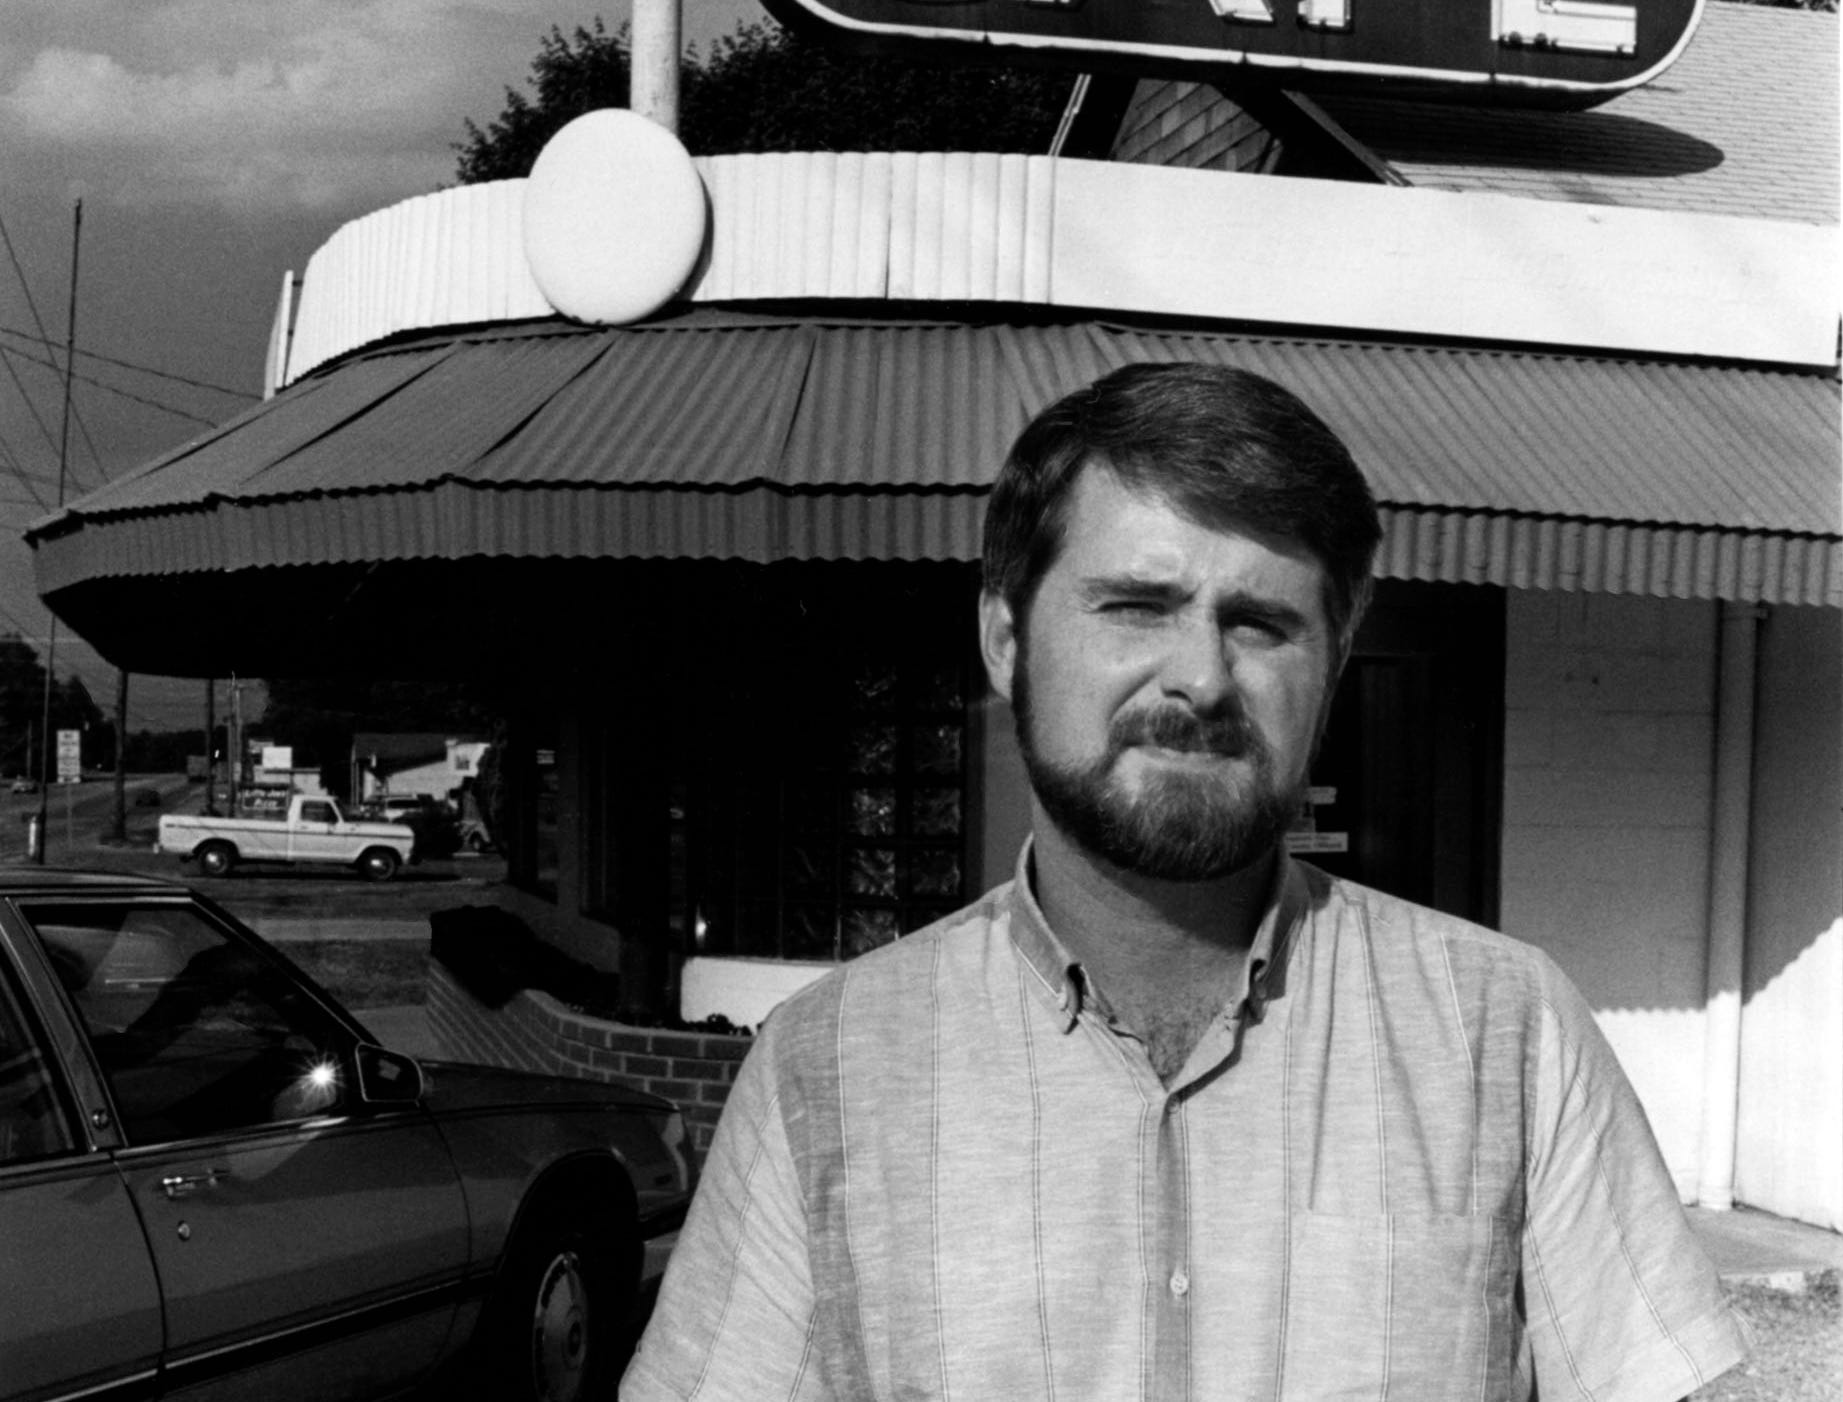 Robert Glen, one of the owners at Court Cafe near Dixie Lee Junction in 1987.